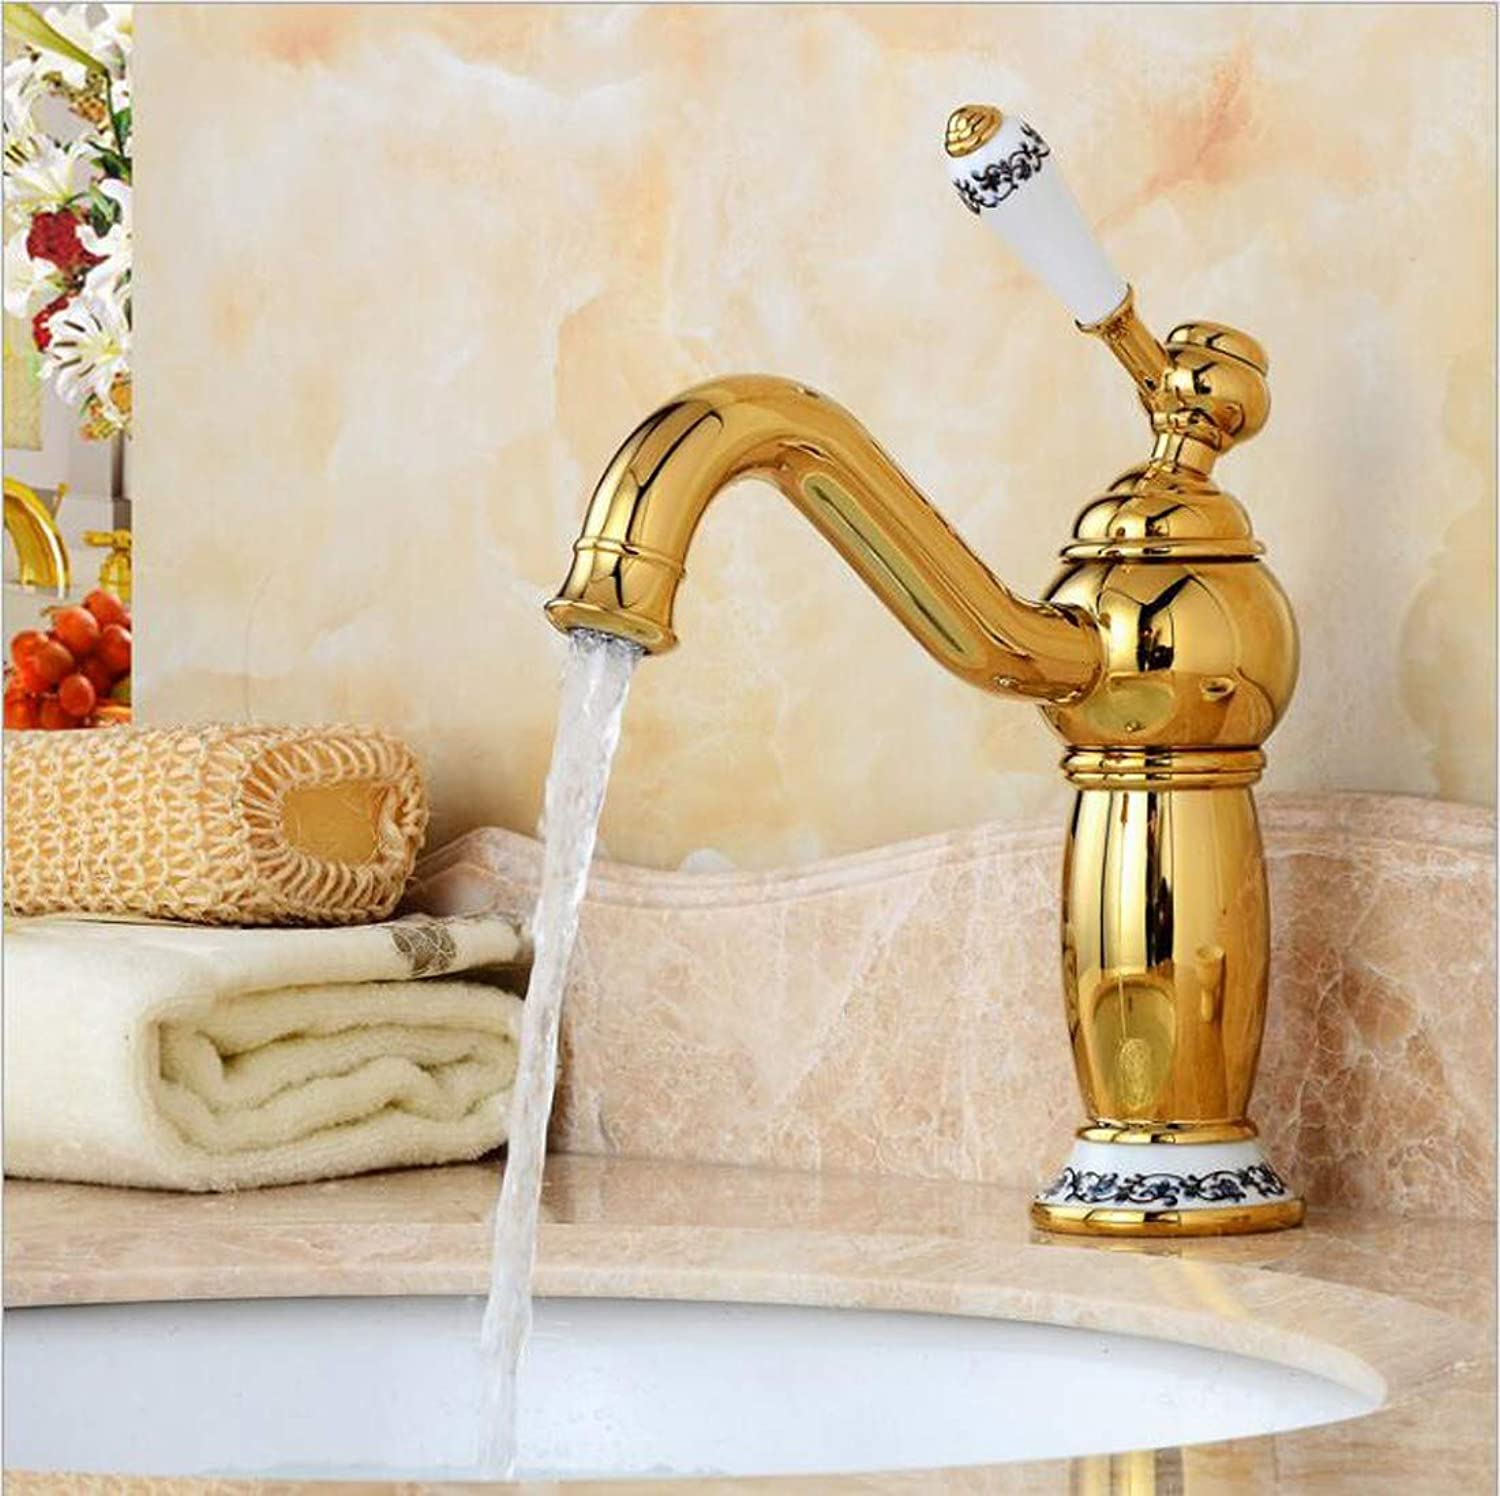 KAIDEFI European-Style gold-Plated Single-Orifice Basin Faucet Hot And Cold Mixing Faucet Creative bluee And White Porcelain Faucet gold Bath Sink Faucet